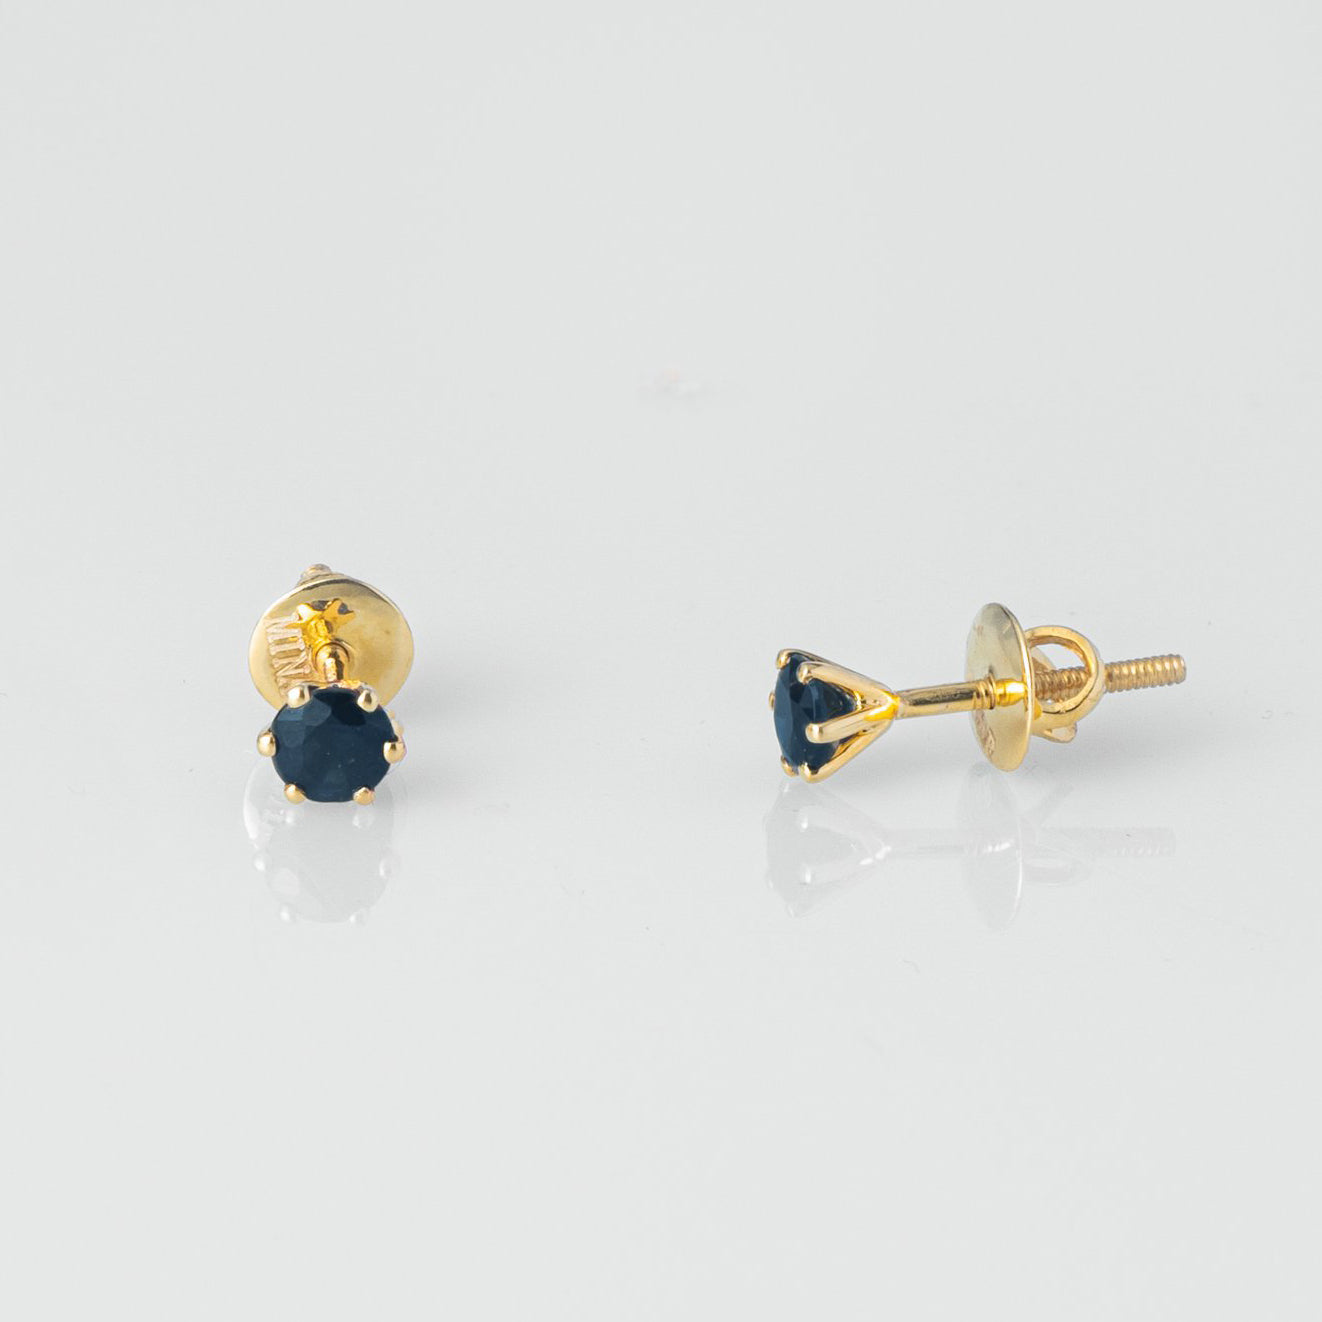 18ct Yellow Gold 0.81ct Round Brilliant Cut Sapphire Stud Earrings (MCS3126)